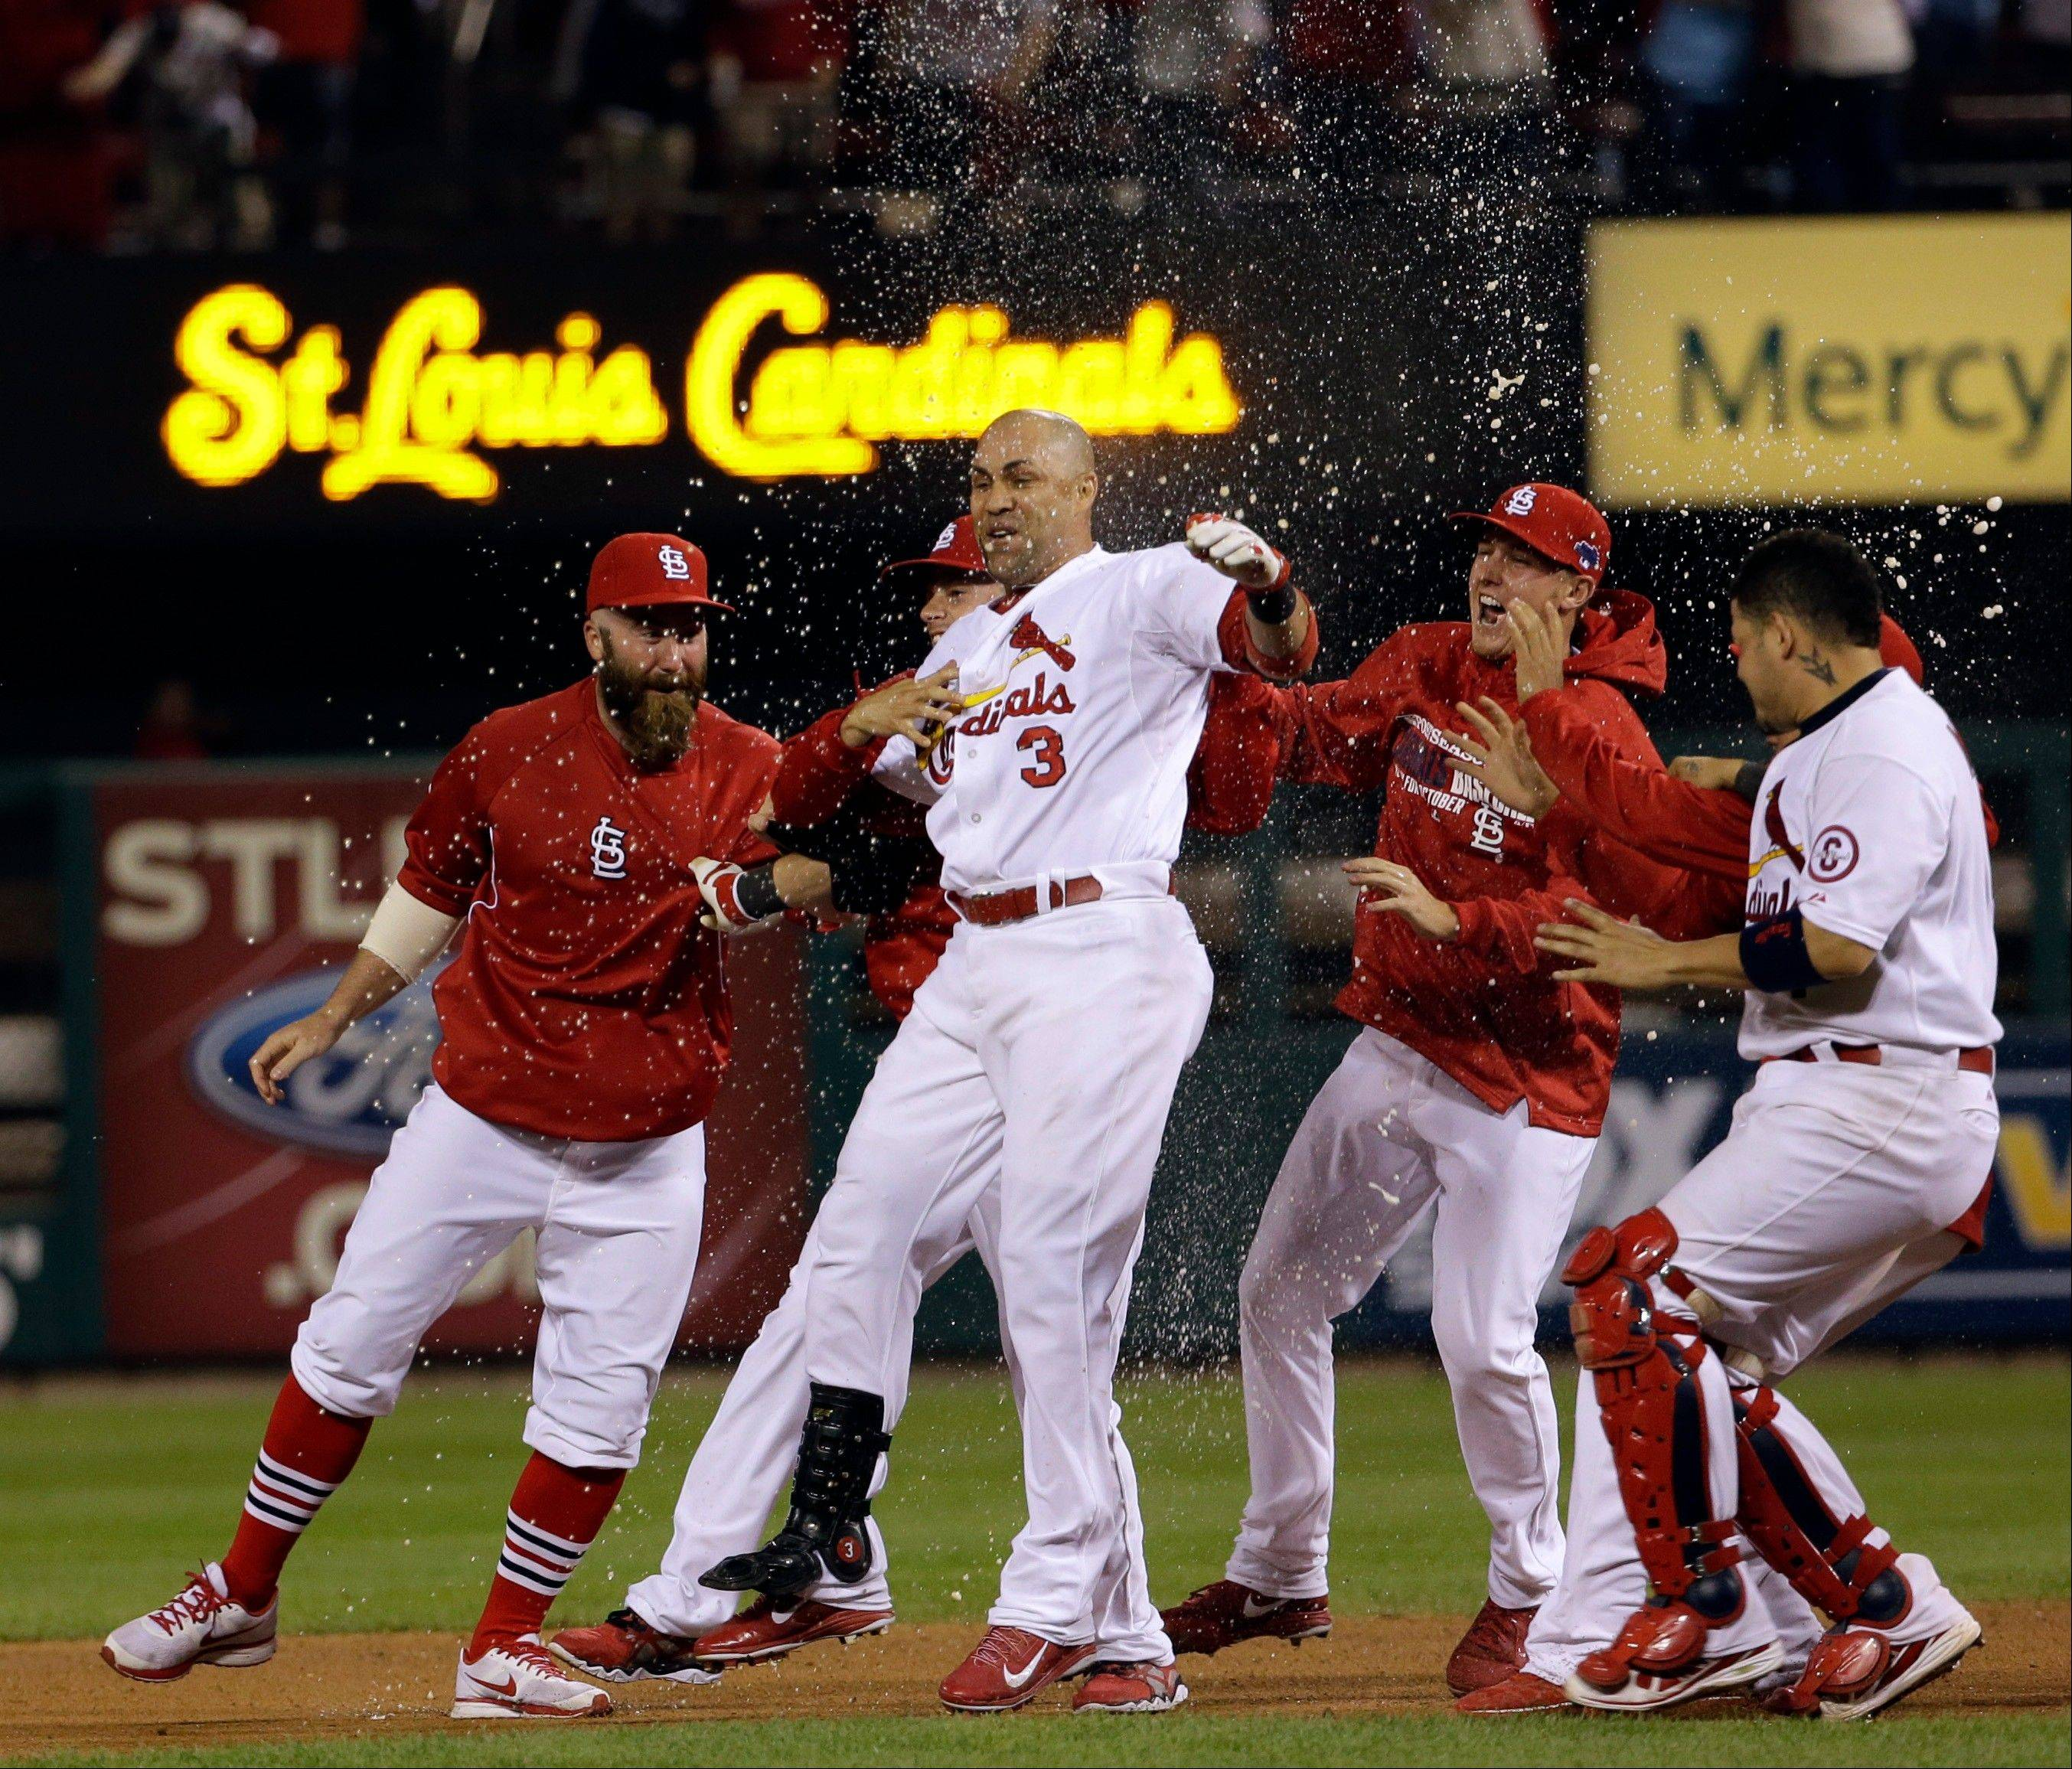 Images: Game 1 of the NLCS